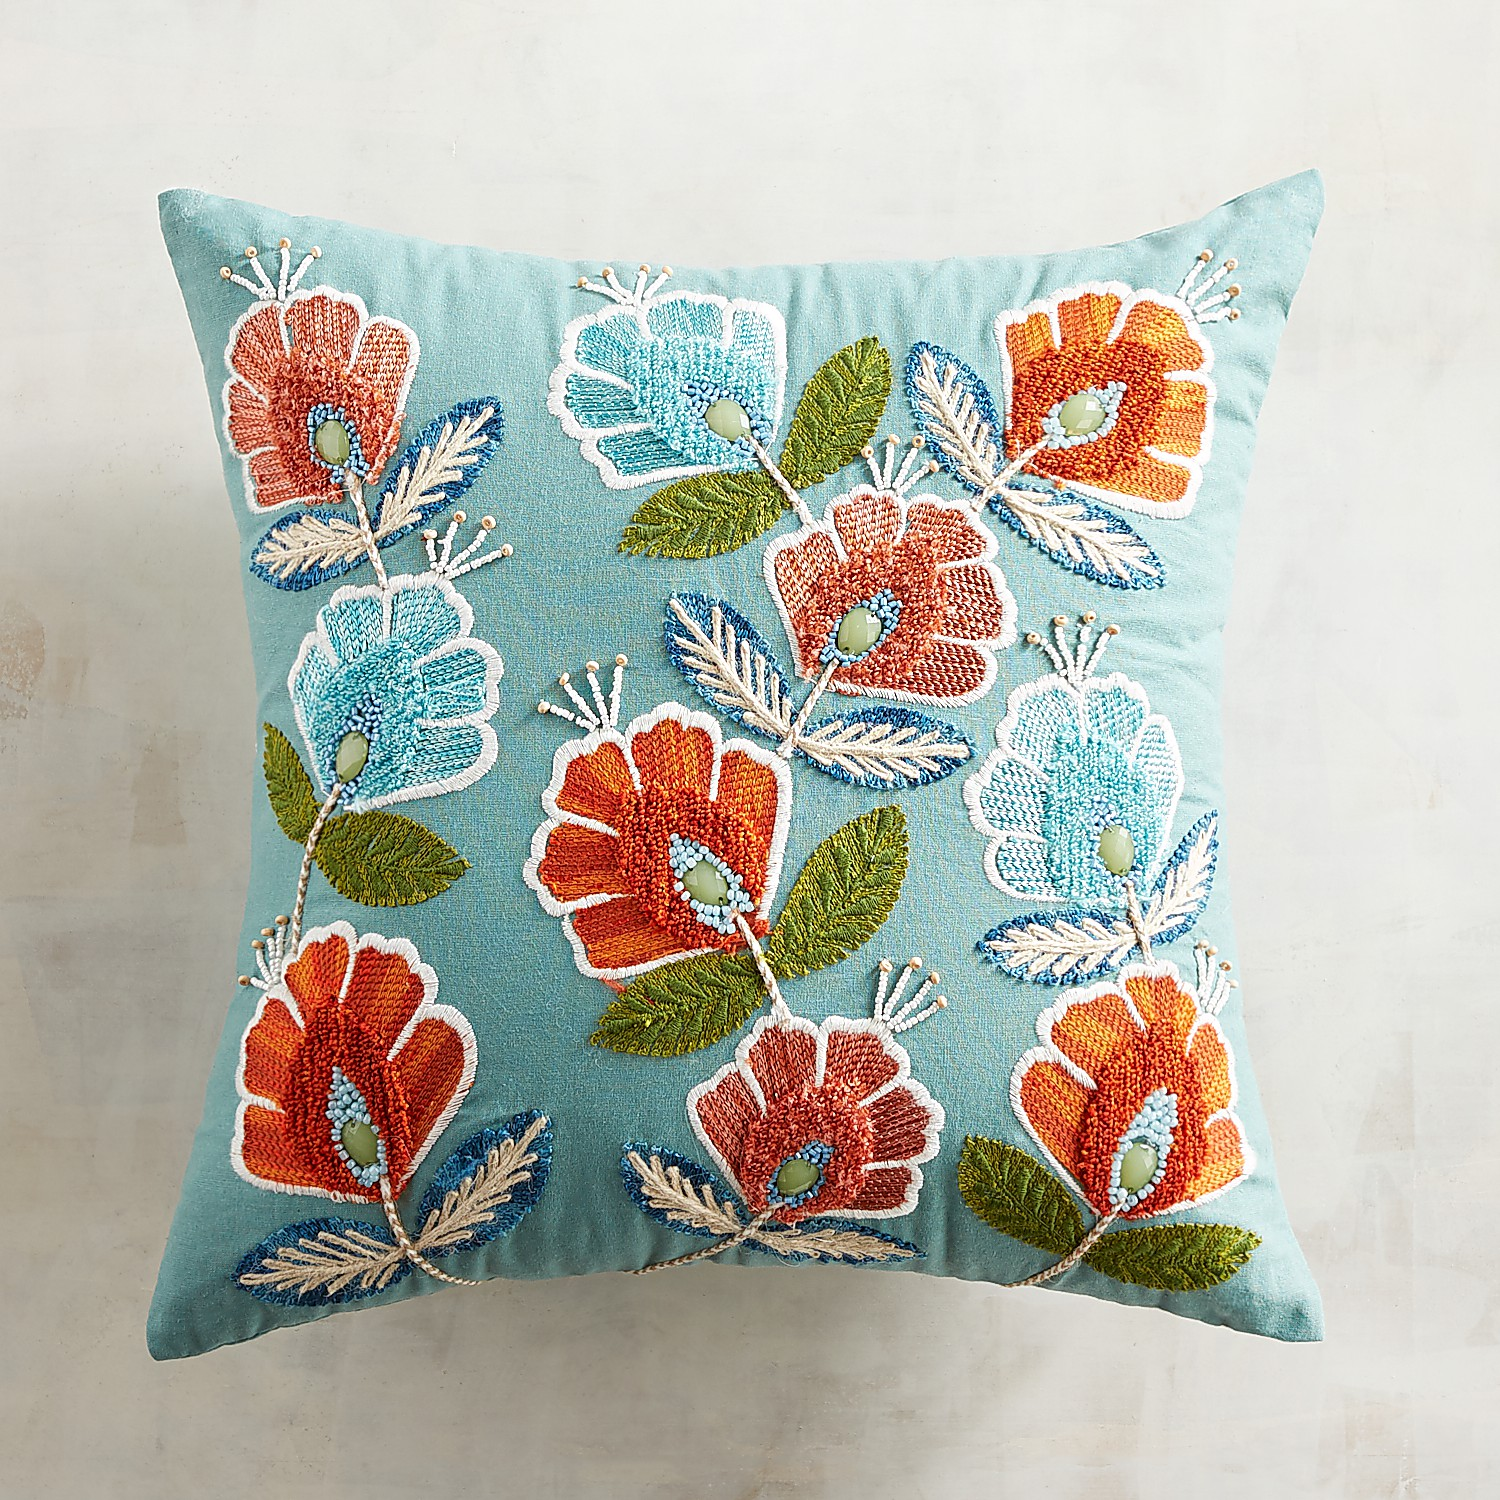 Beaded Scattered Floral Pillow